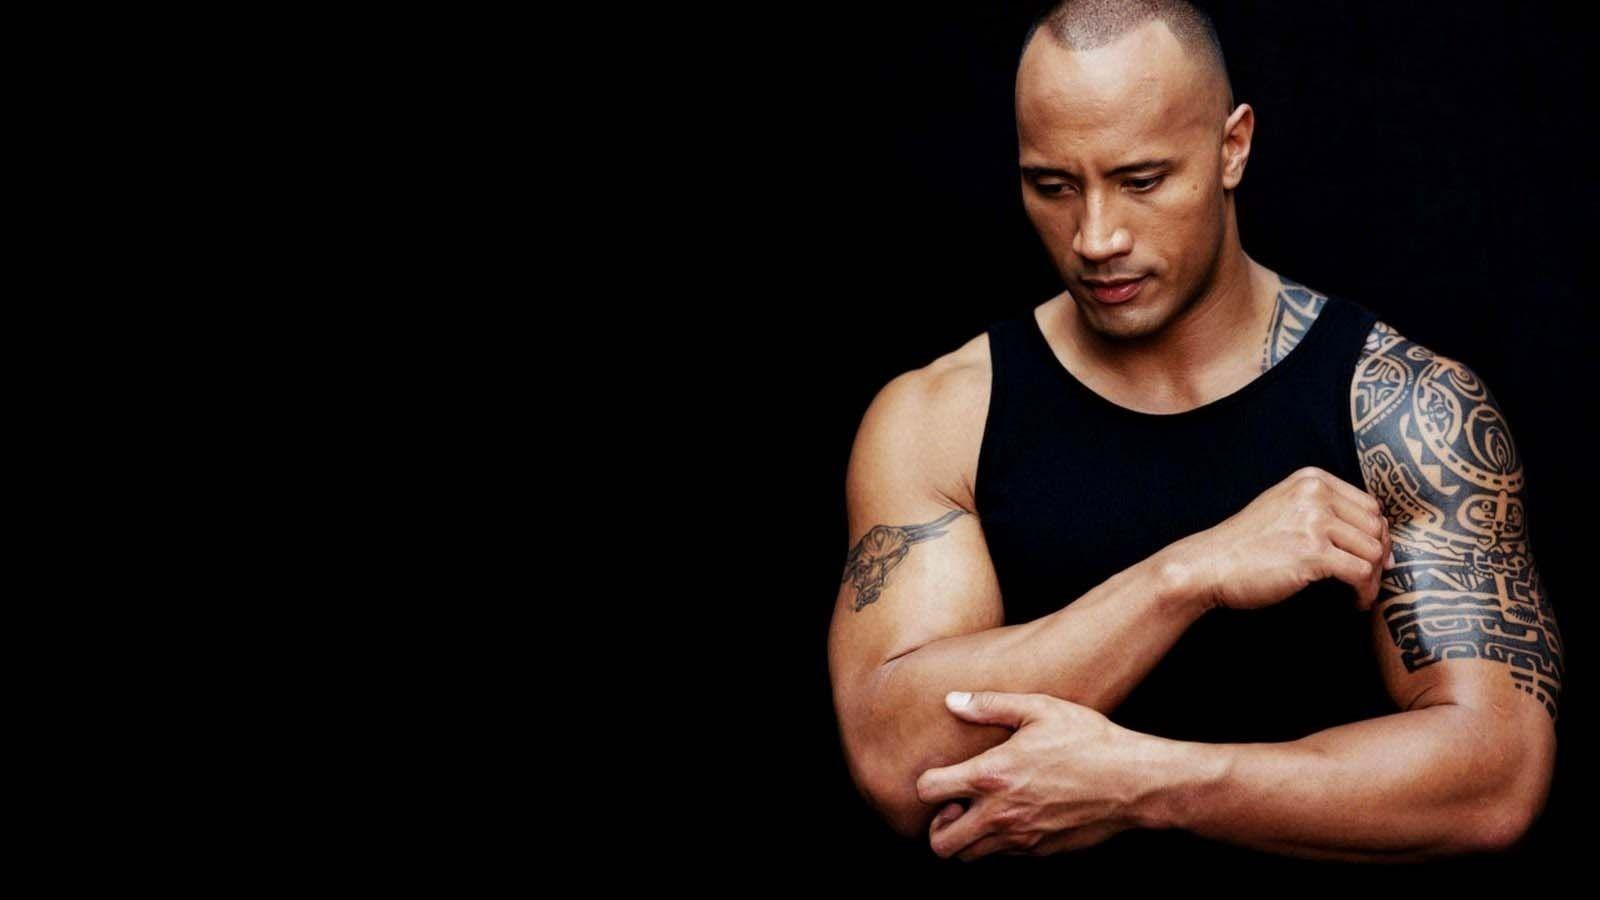 The Rock Wwe Dwayne Actor Hd Wallpaper